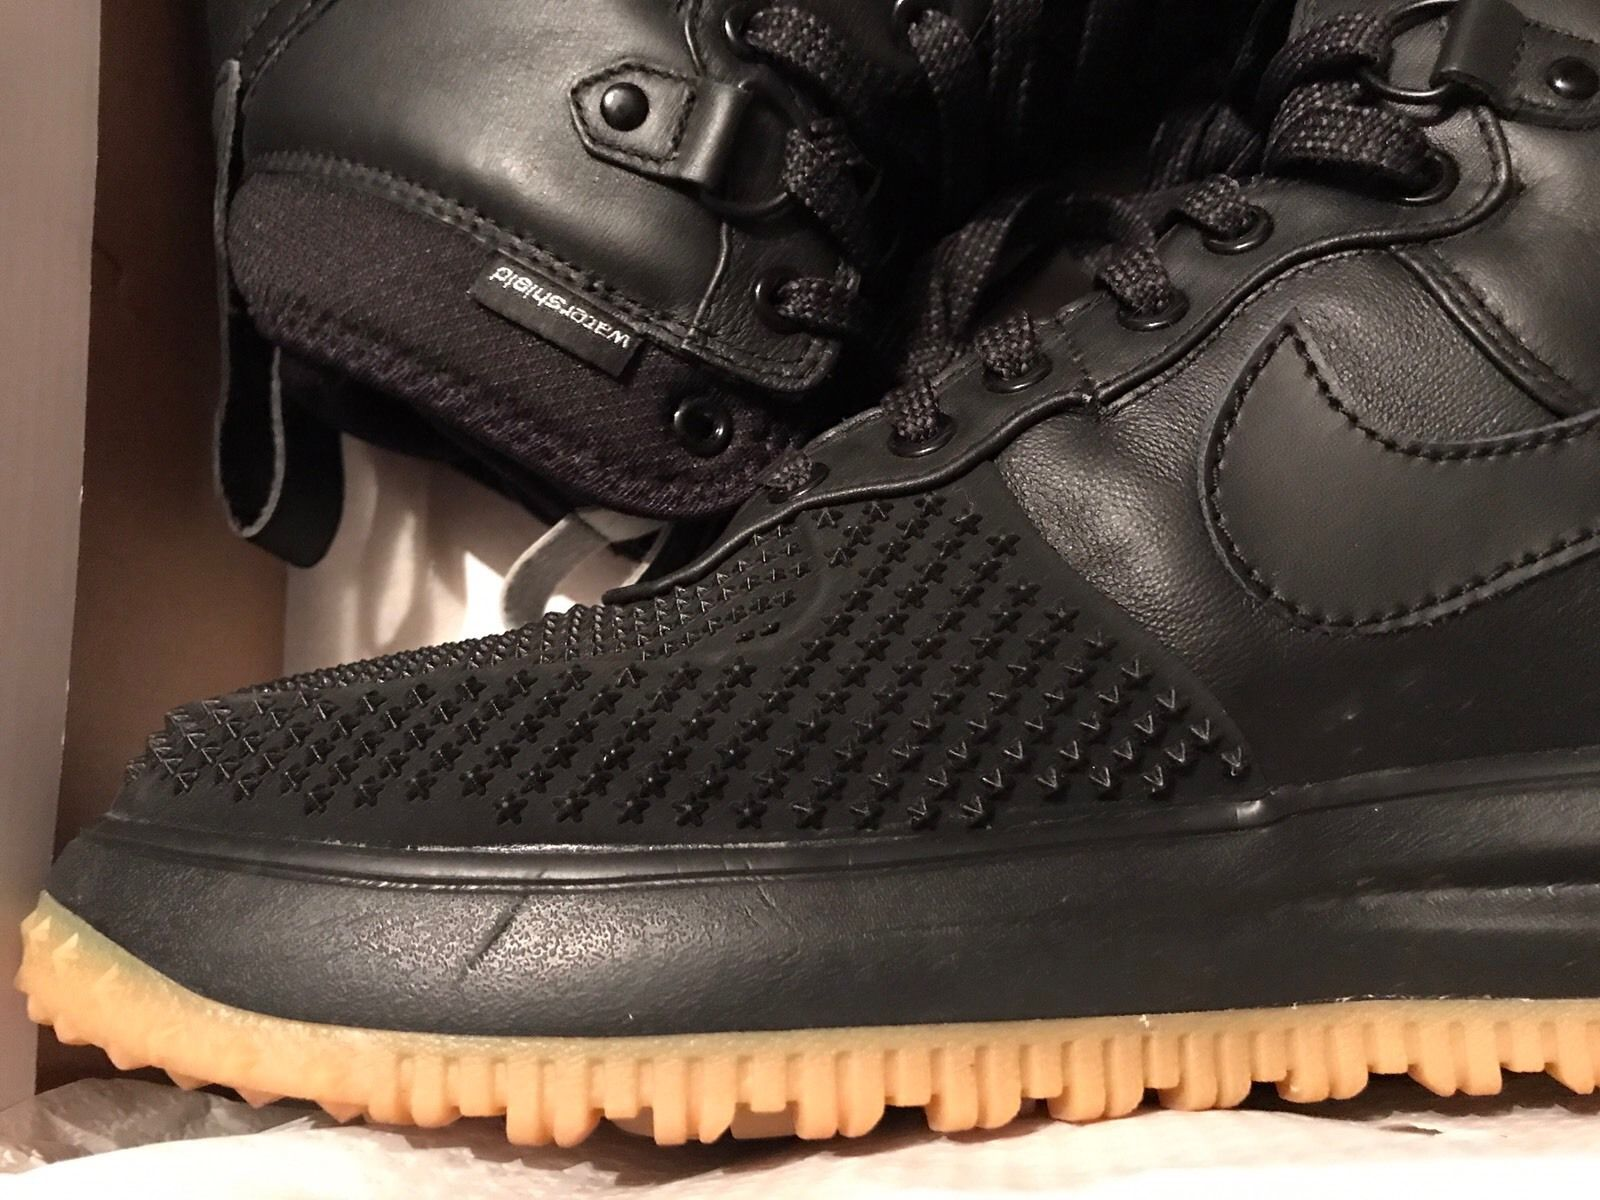 Image of Nike-Lunar-Force-1-Duckboot-Mens-Sz-13-Black-Metallic-Silver-Anth-Black-Used